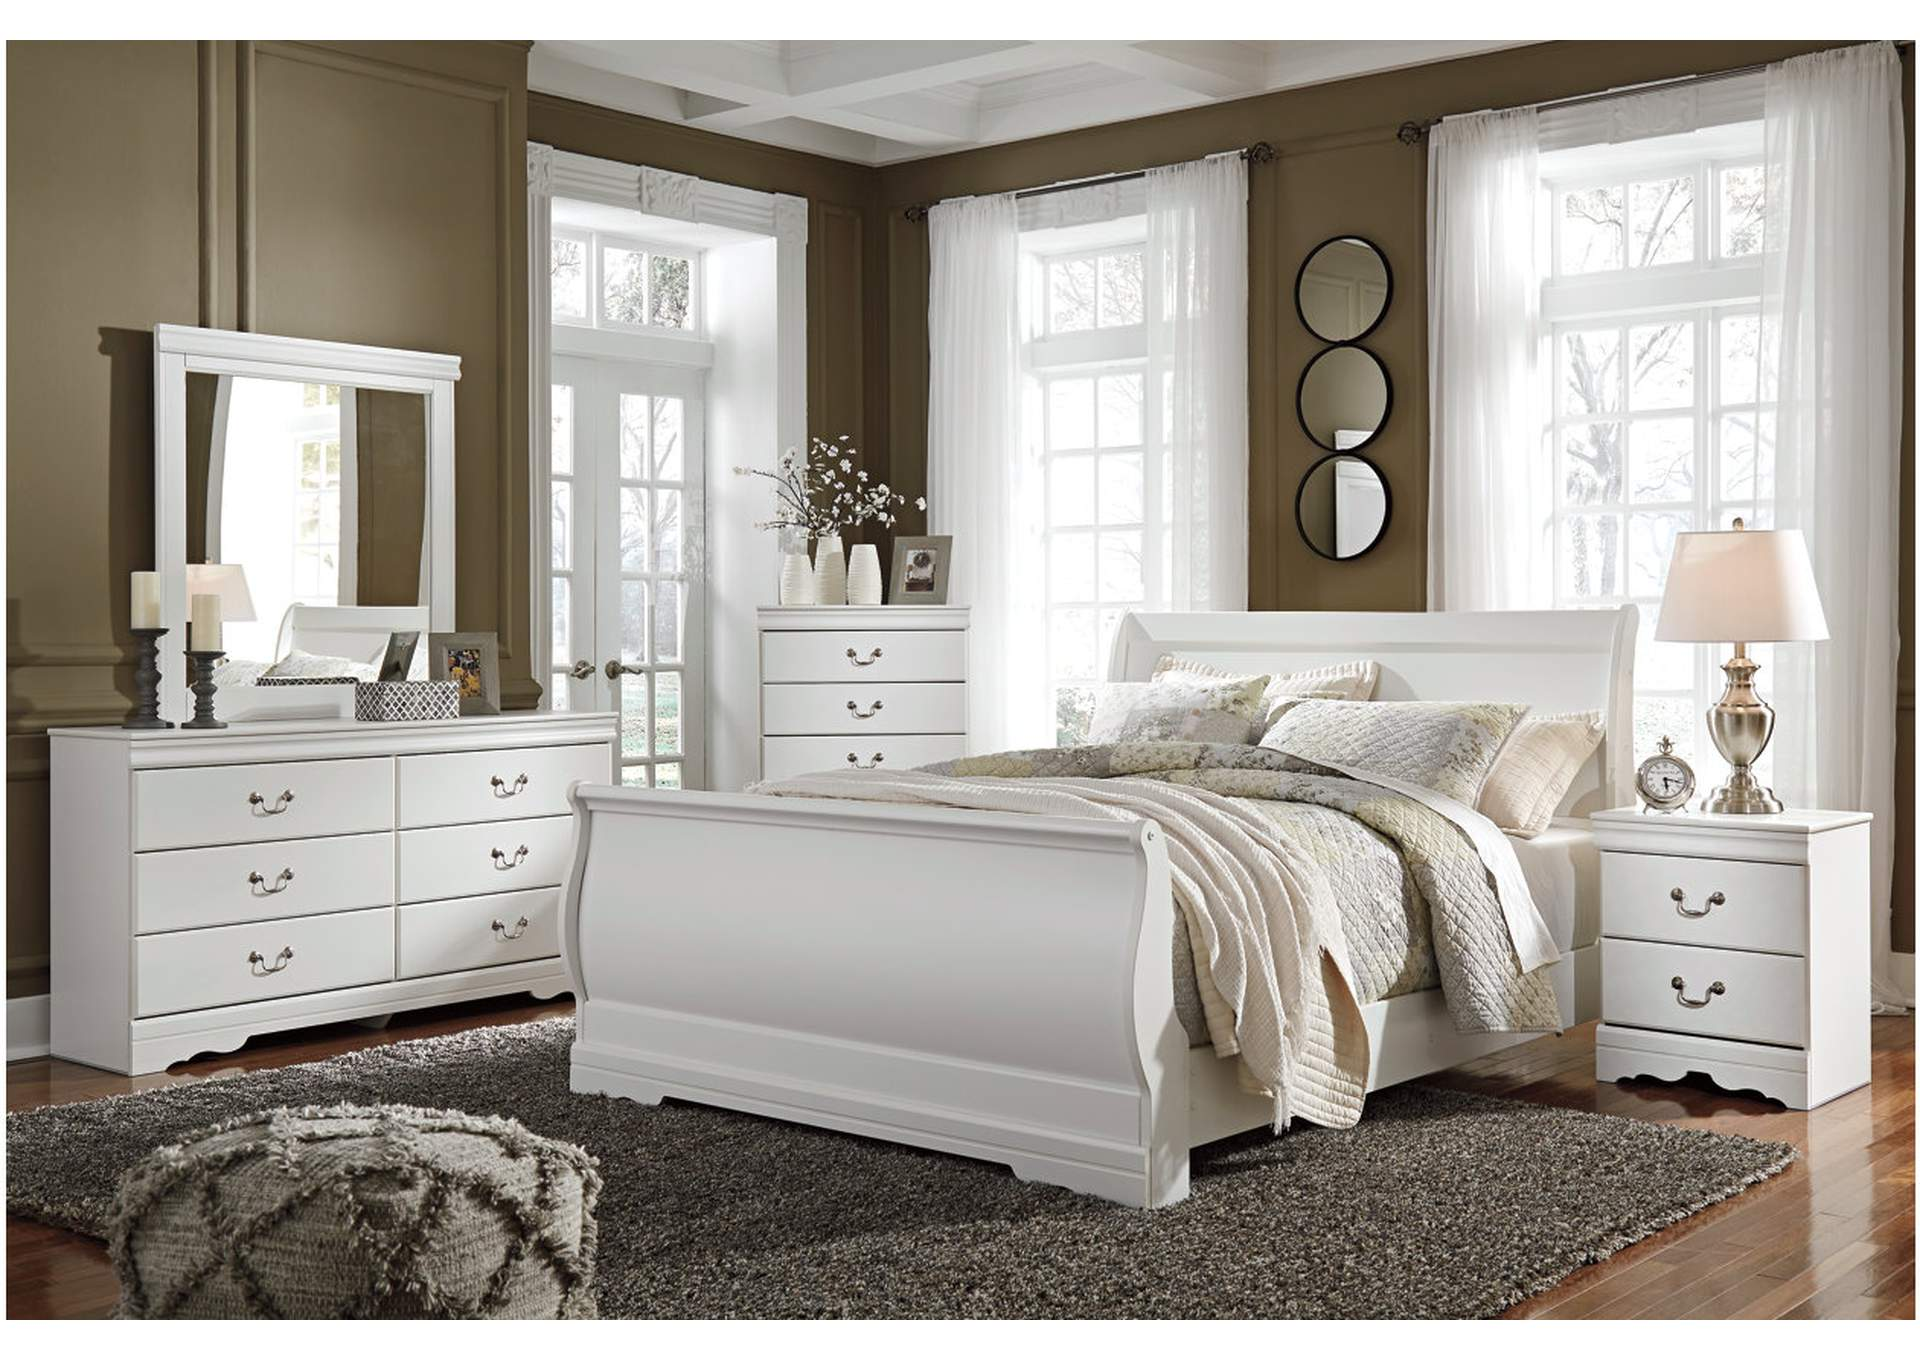 Anarasia White 2 Drawer Nightstand,Signature Design By Ashley